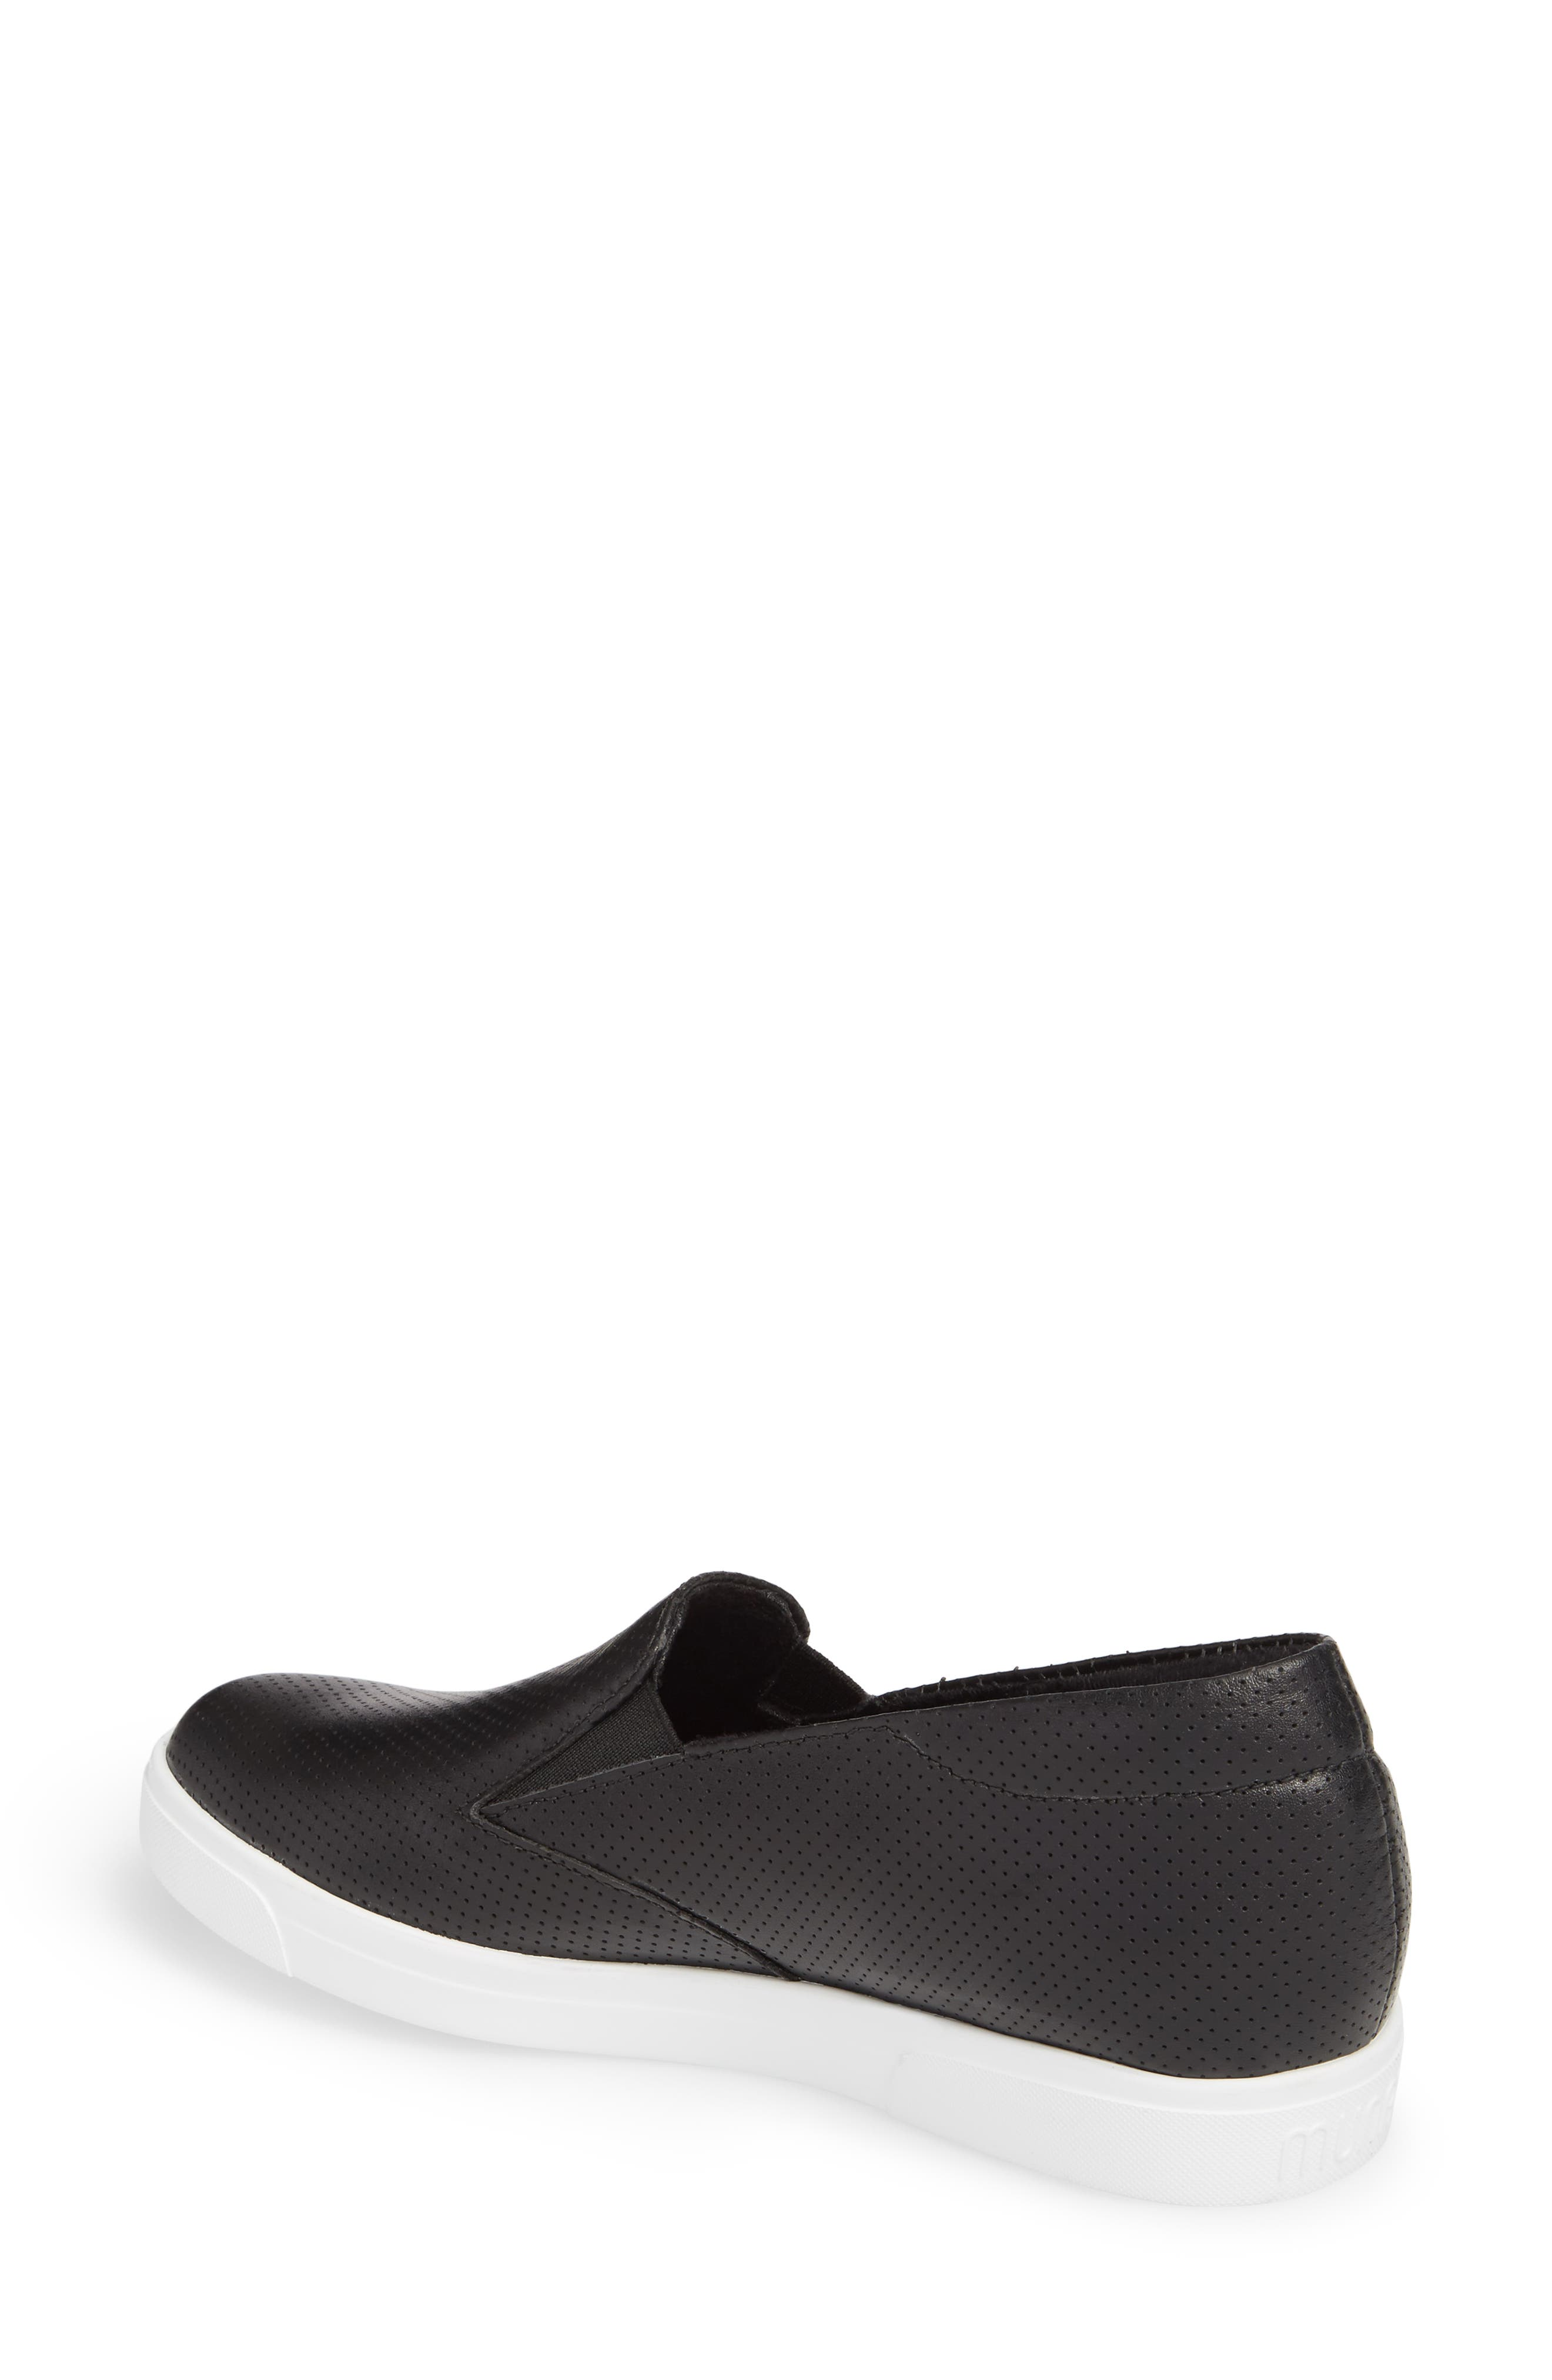 MUNRO, Lulu Slip-On Sneaker, Alternate thumbnail 2, color, 002